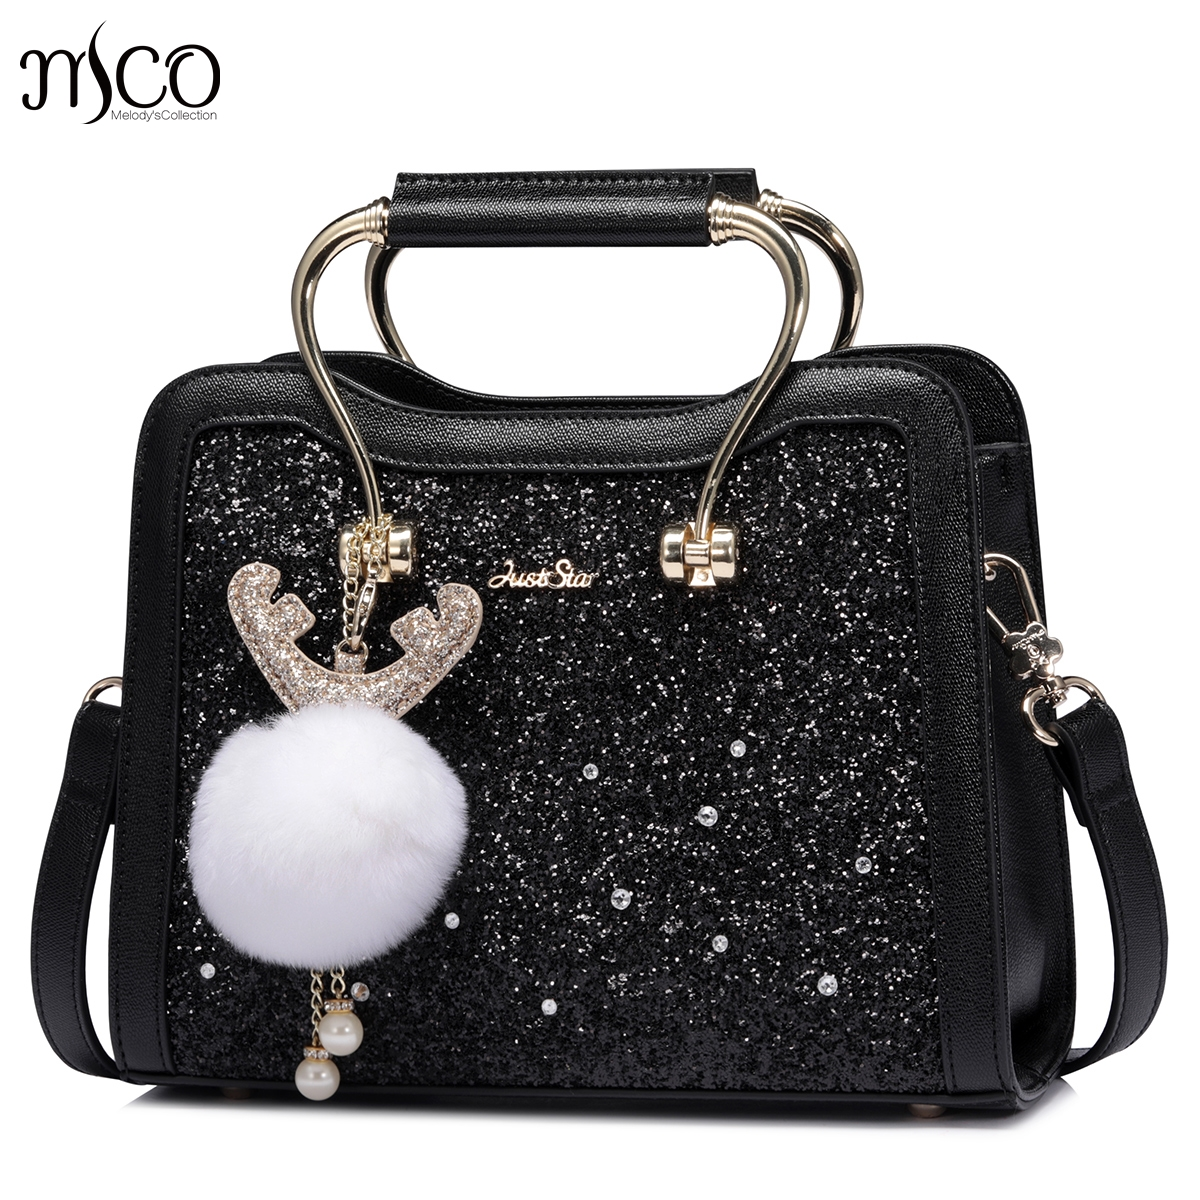 Womens Fashion Cute Girls Sequins Handbags Paillette Leisure Leather Ladies Messenger Bags Sac a main femme de marque luxe guir caerlif woman handbags genuine leather messenger crossbody bags ladies sac a main femme de marque luxe cuir 2017 shoulder bags